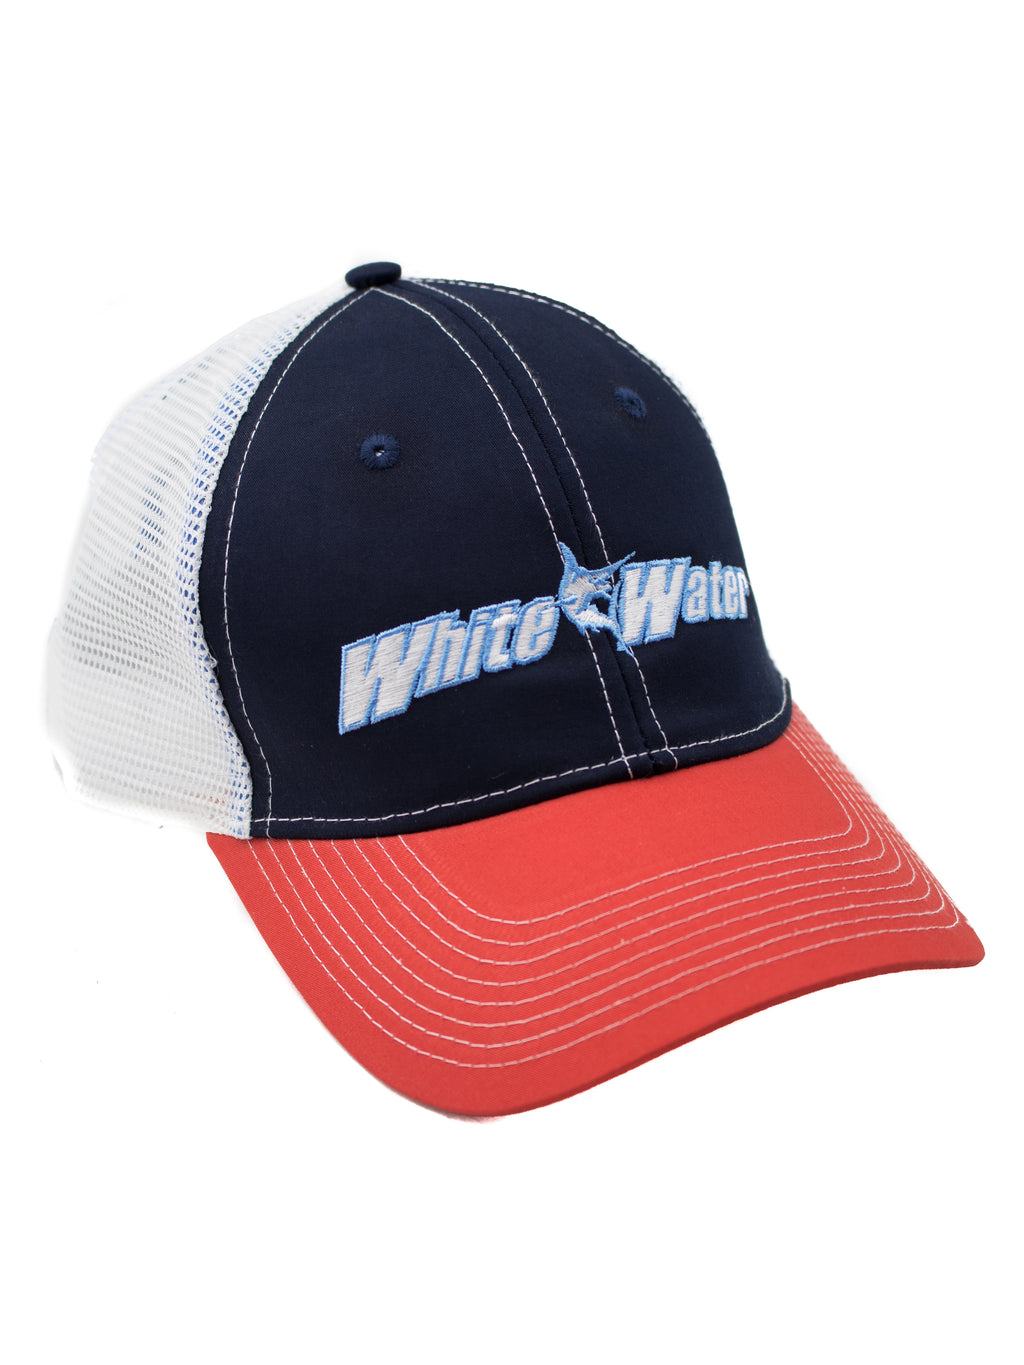 White Water Life American Trucker Hat